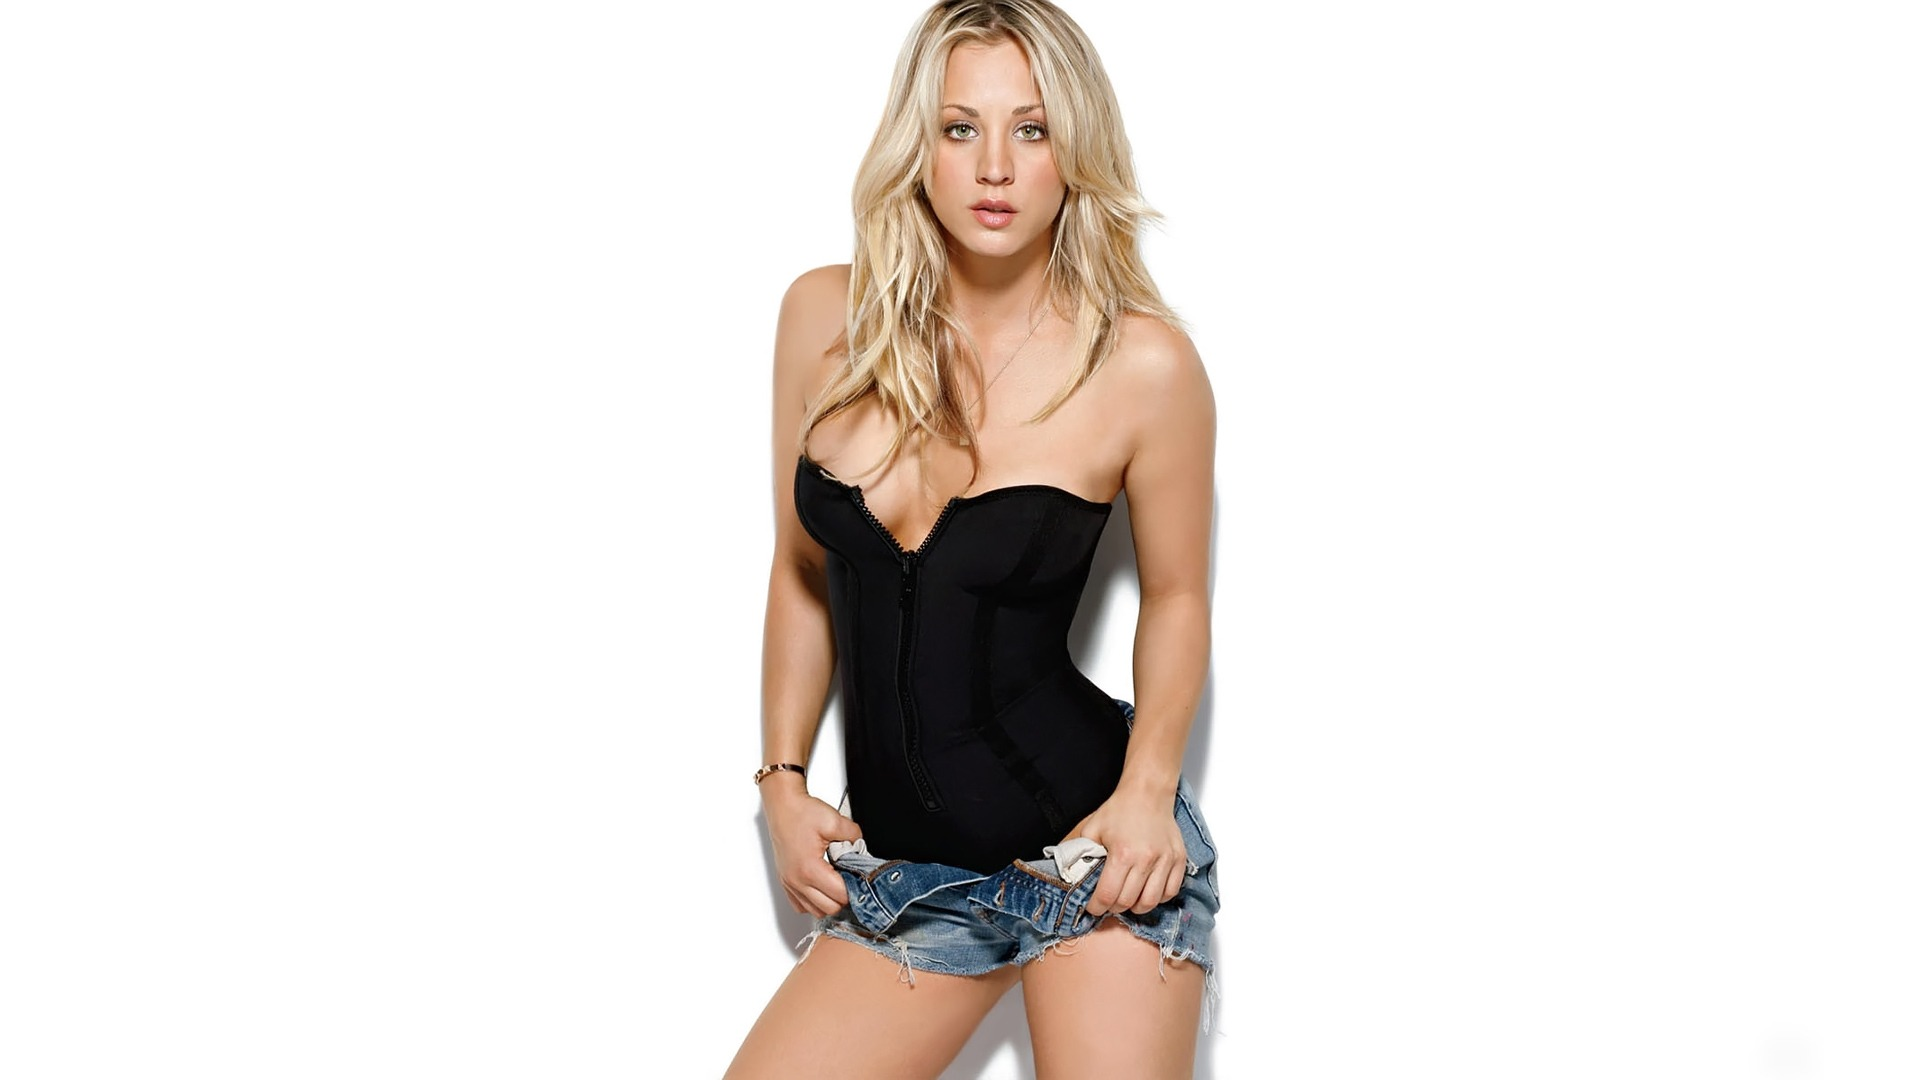 Kaley Cuoco Very Nice Wallpapers